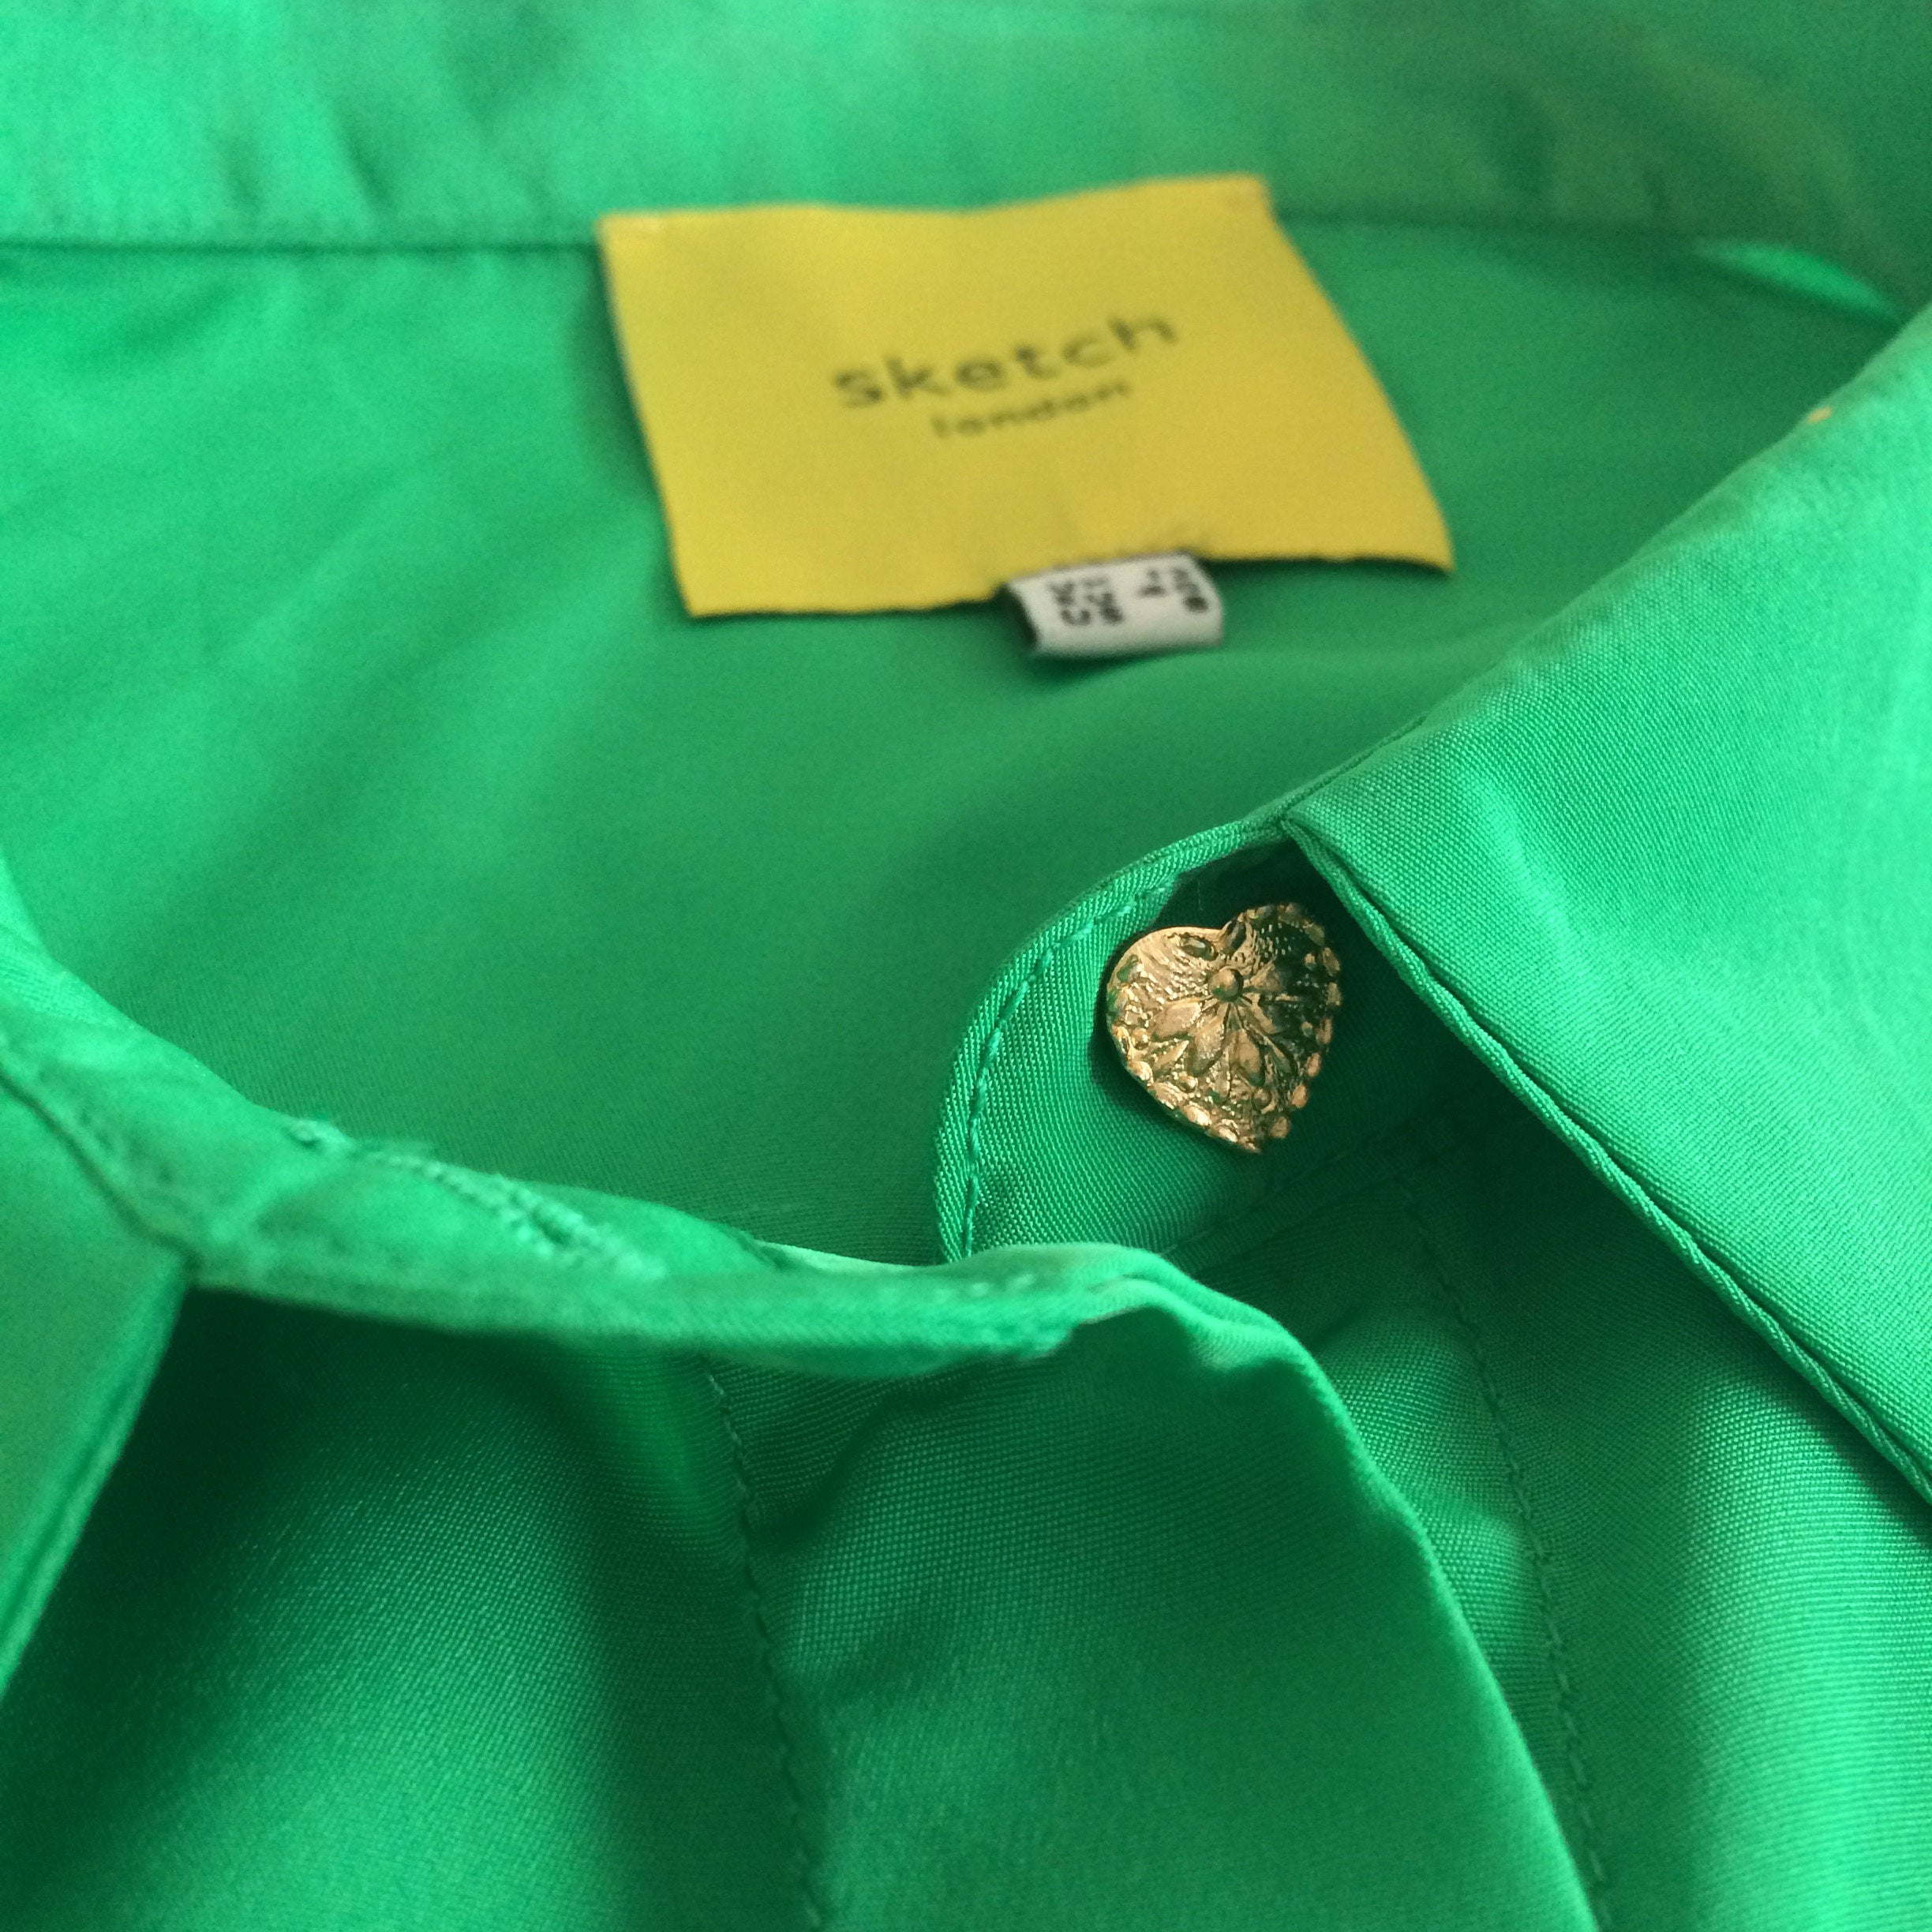 Sketch London Heart Button Emerald Green Shirt Blouse full sleeve ethical sustainable